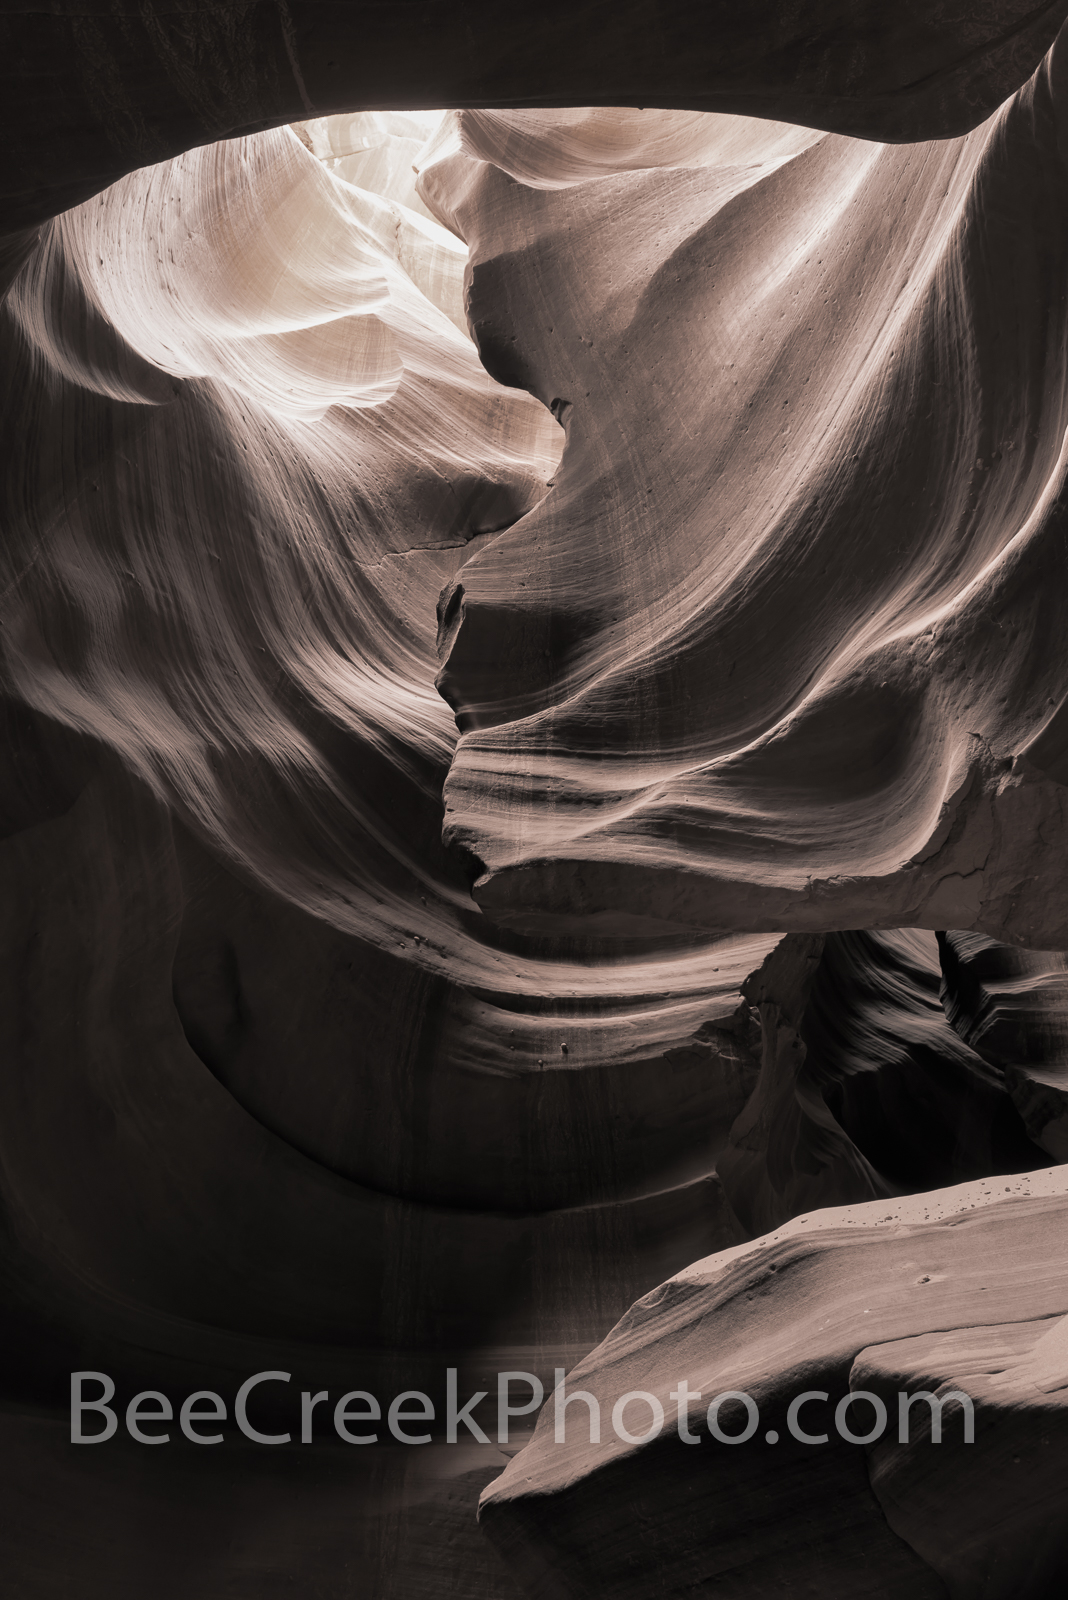 Slot Canyon Monchromatic Vertical - This abstract captures the beauty and mystery of the Antelope Canyons one of the many slot...